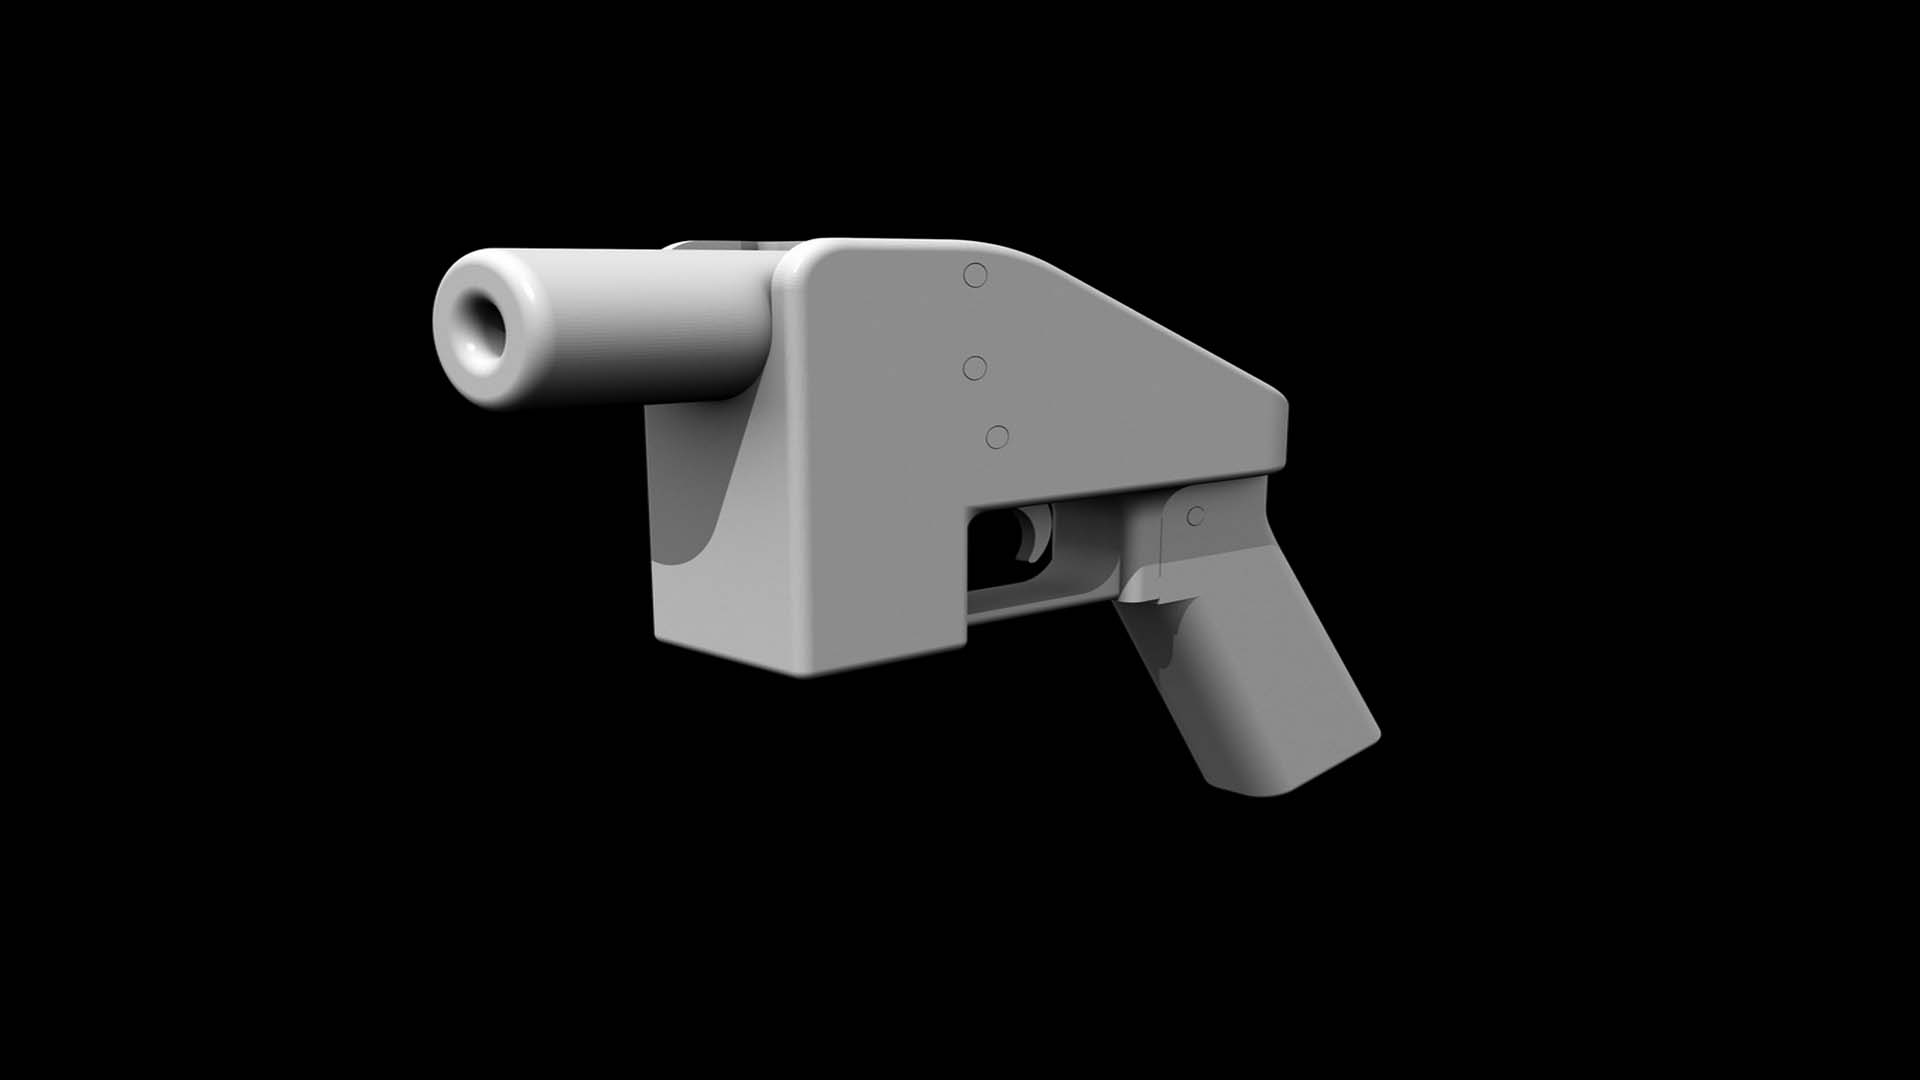 Concluding a multi-year federal lawsuit the US government has agreed to waive its prior restraint against Defense Distributed, that in 2013 had put online the plans for a functional fully 3-D printed gun.